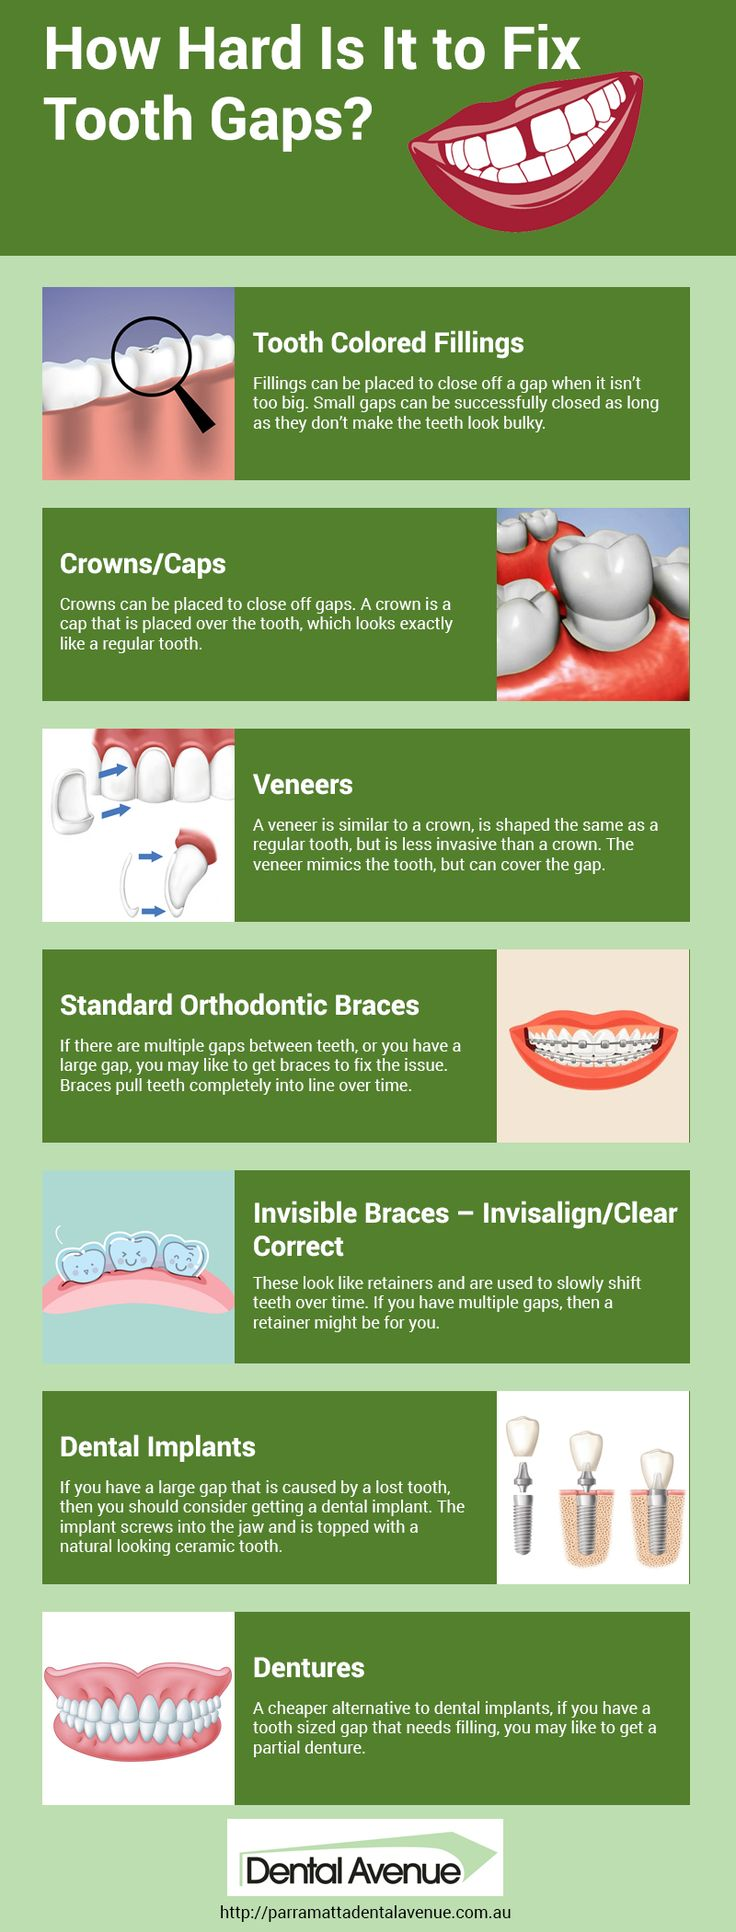 Tooth gaps often results in embarrassment. However, there